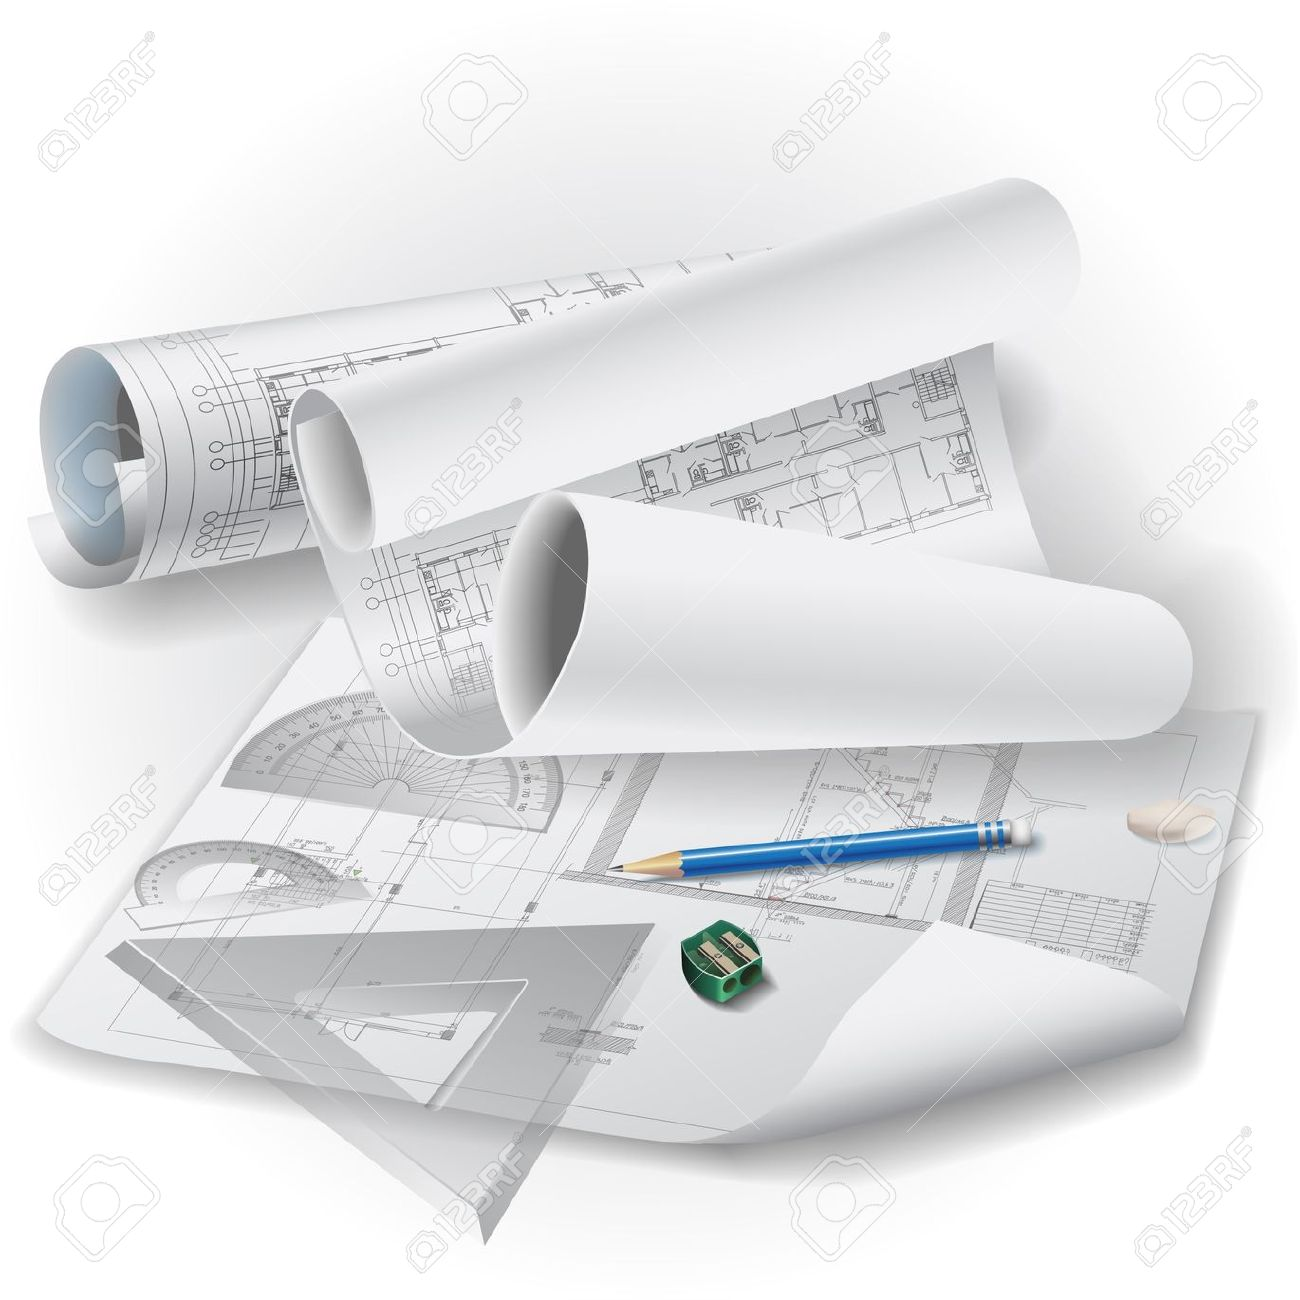 Architecture Drawing Clipart.